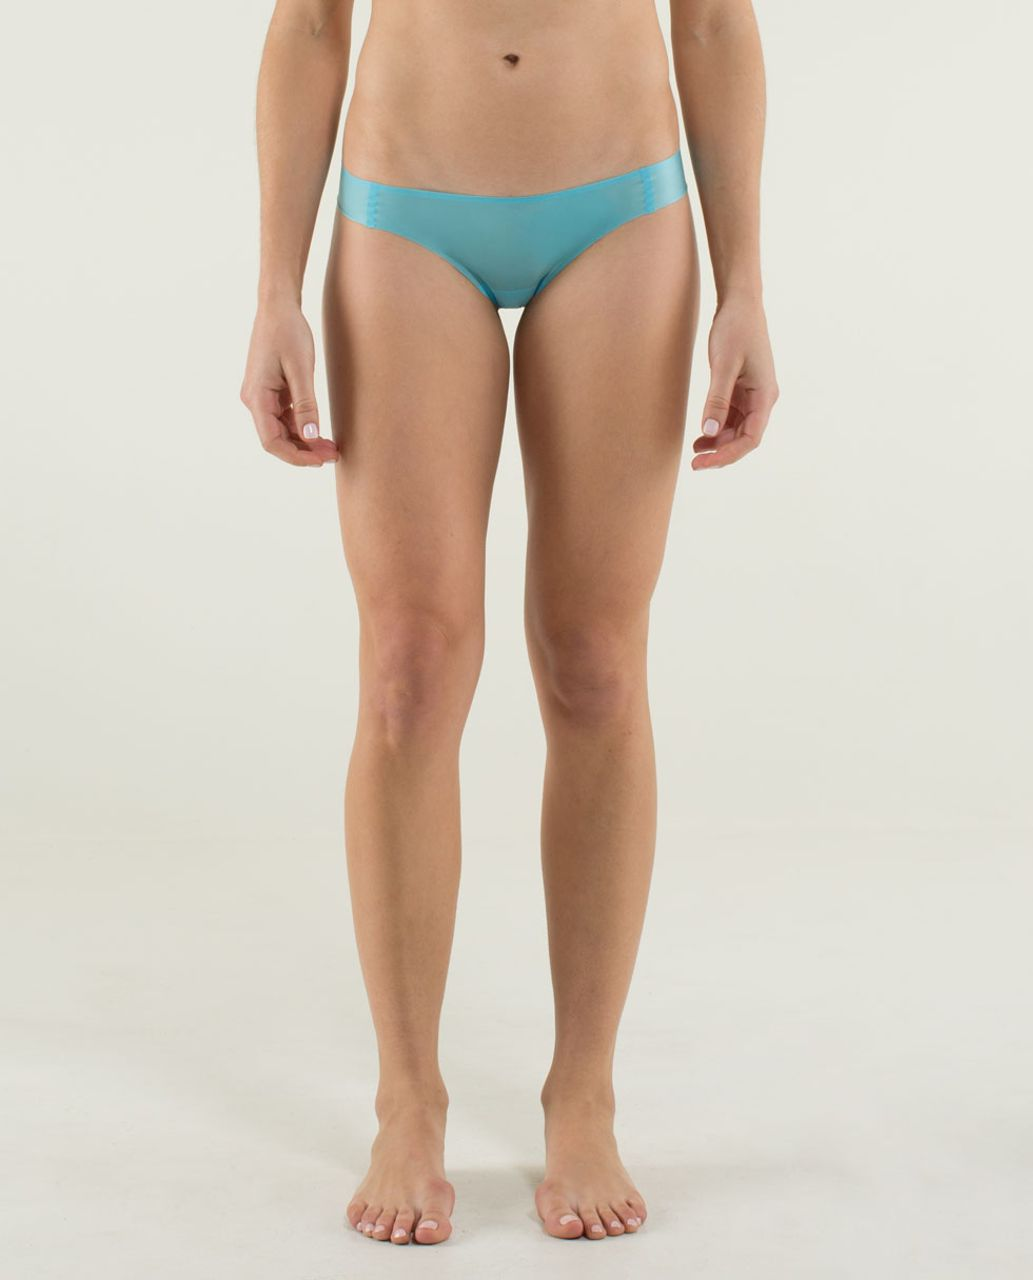 Lululemon Light As Air Thong - Blue Moon